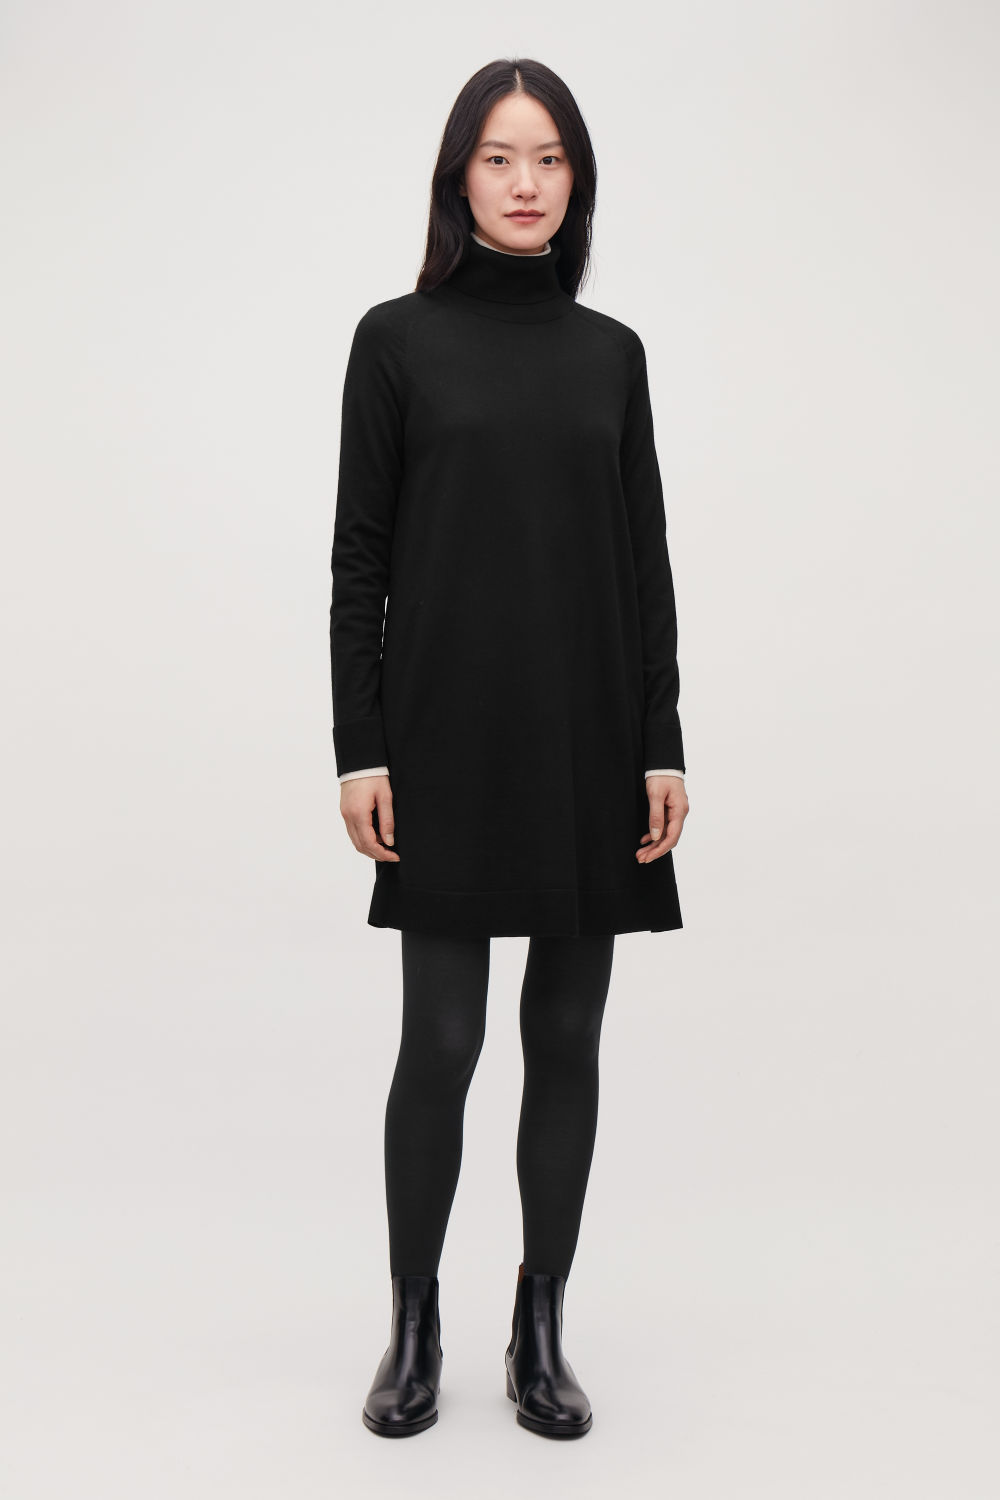 A-LINE WOOL ROLL-NECK DRESS